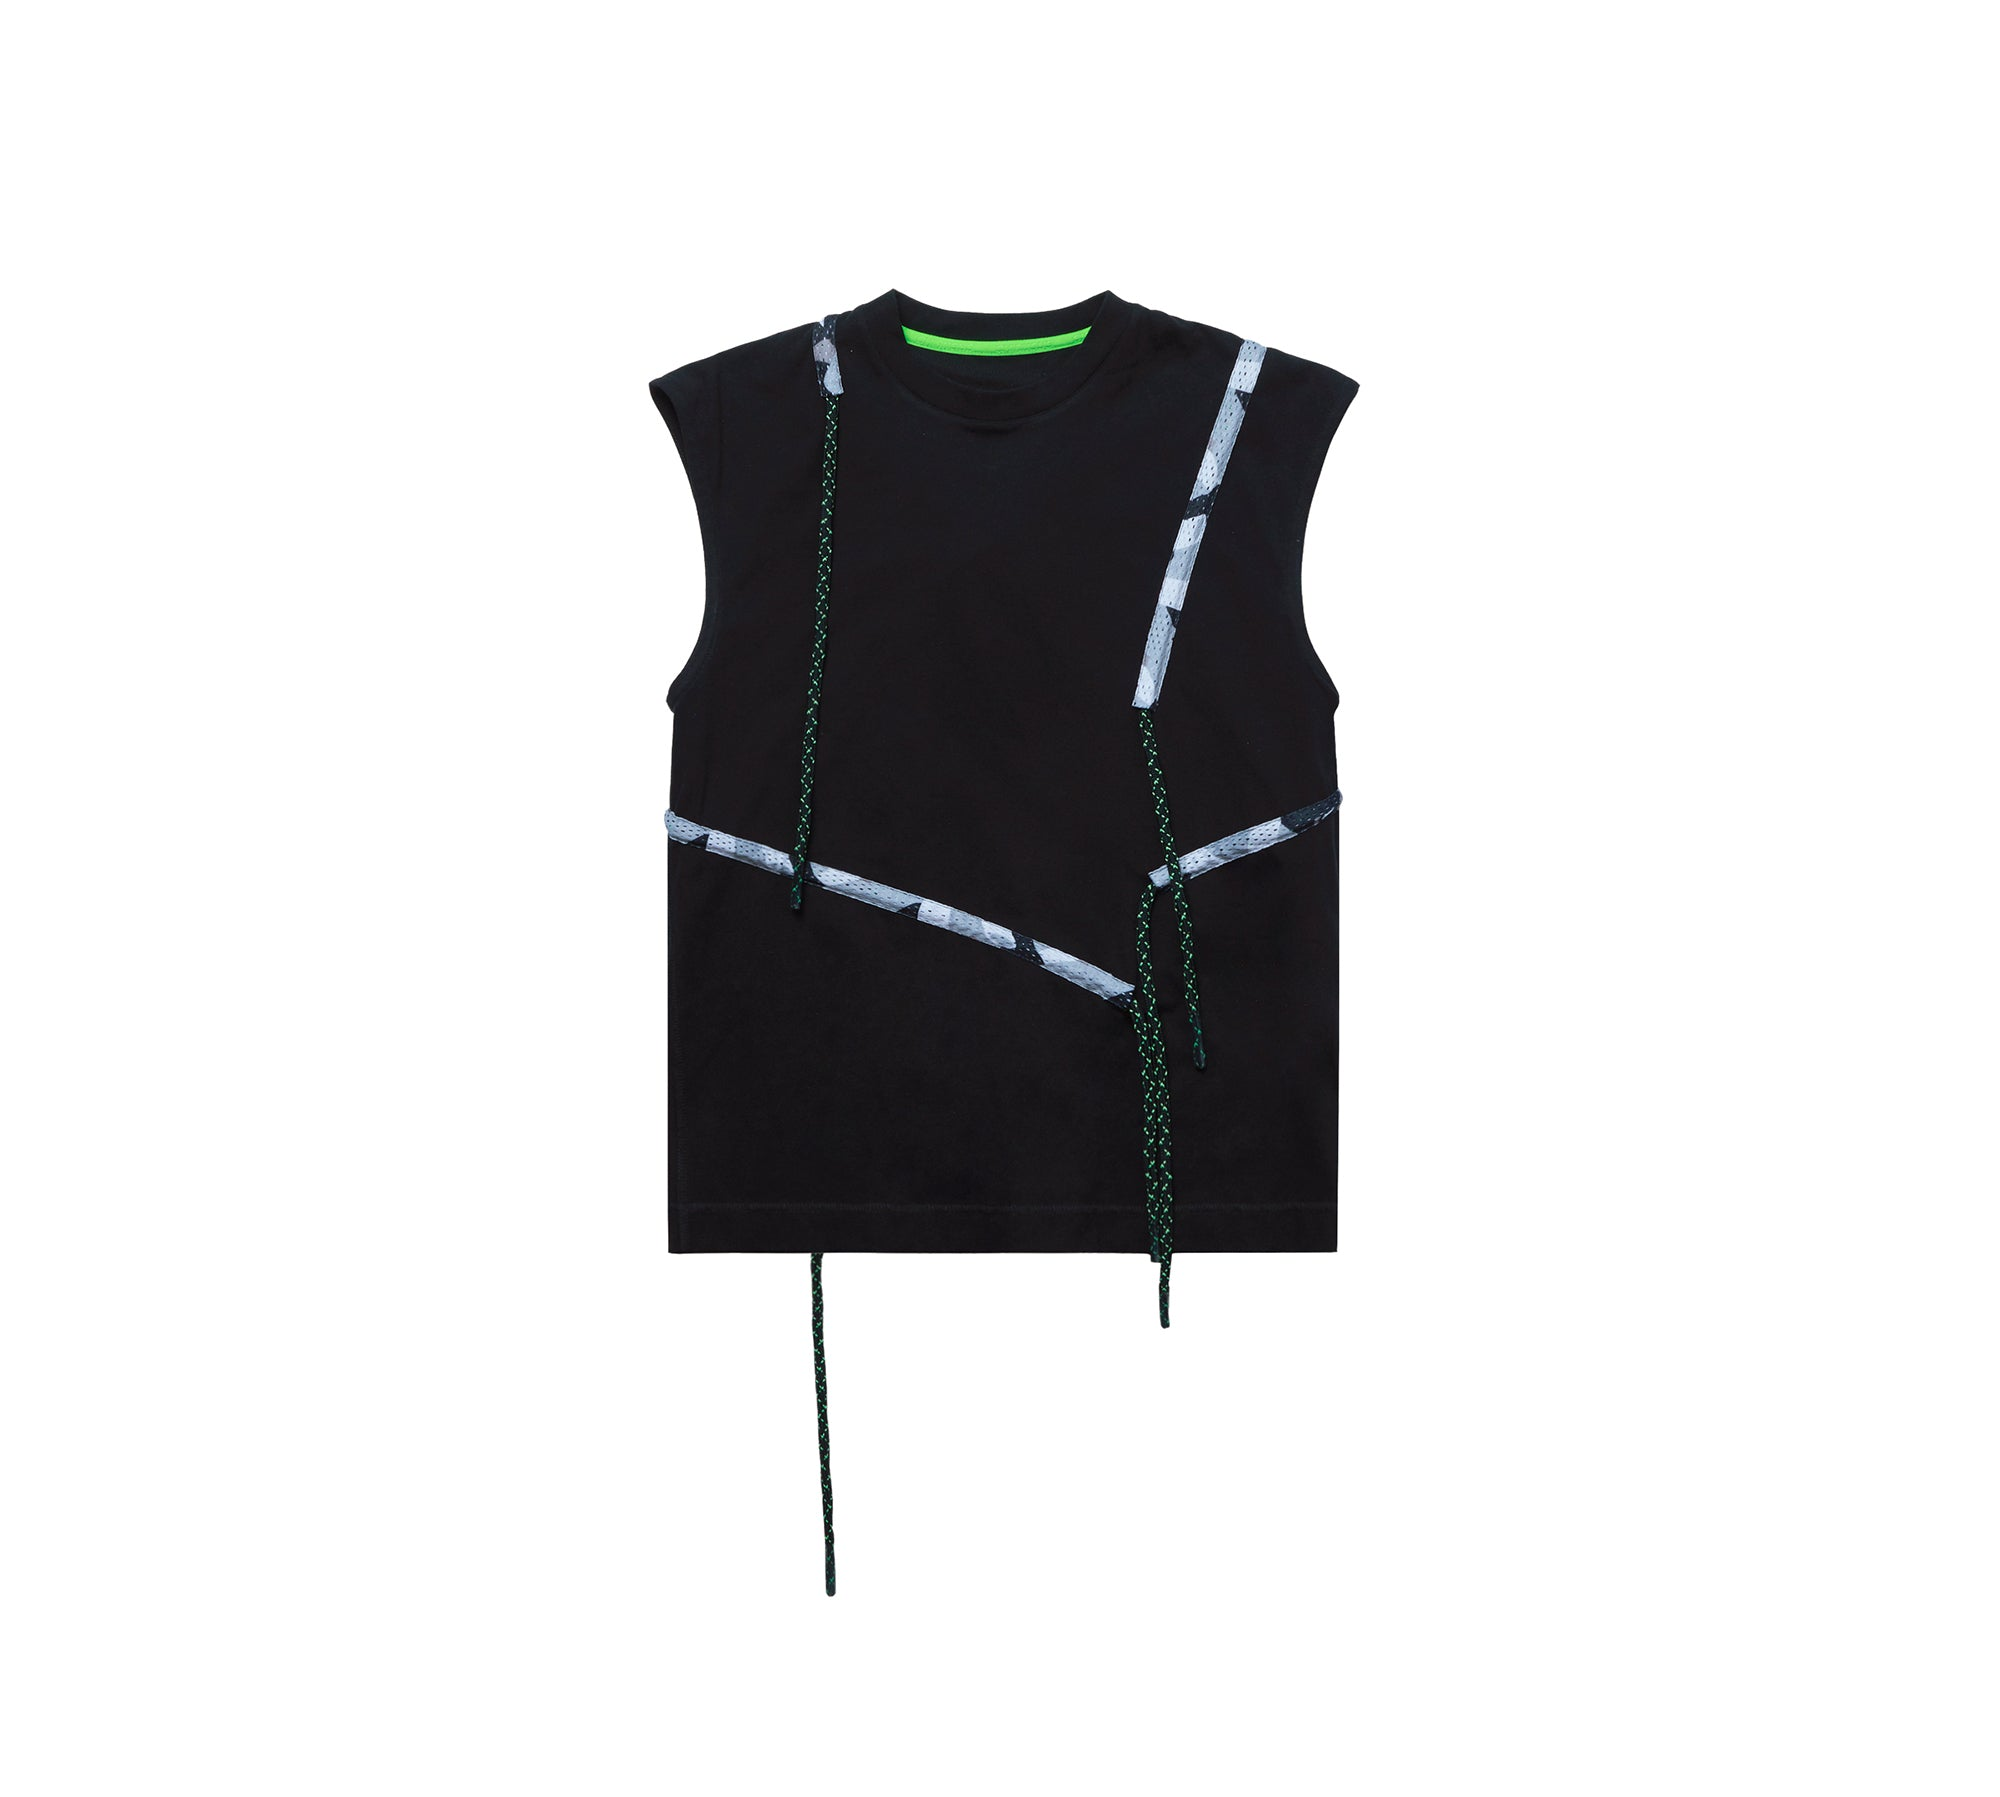 DRAWSTRING CREWNECK SLEEVELESS SHIRT